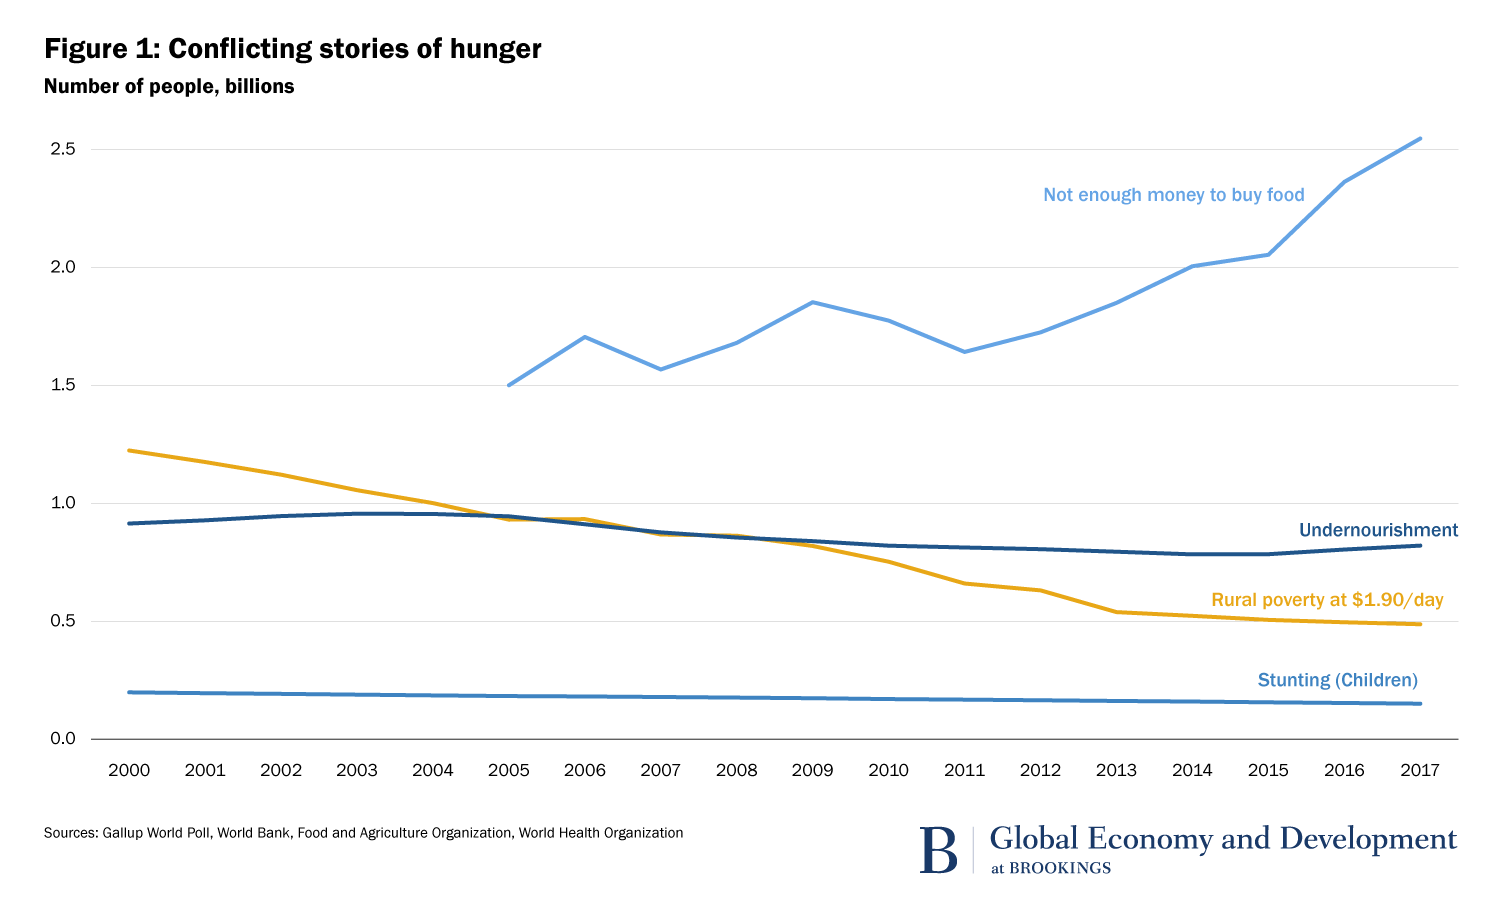 Are we reducing hunger in the world?